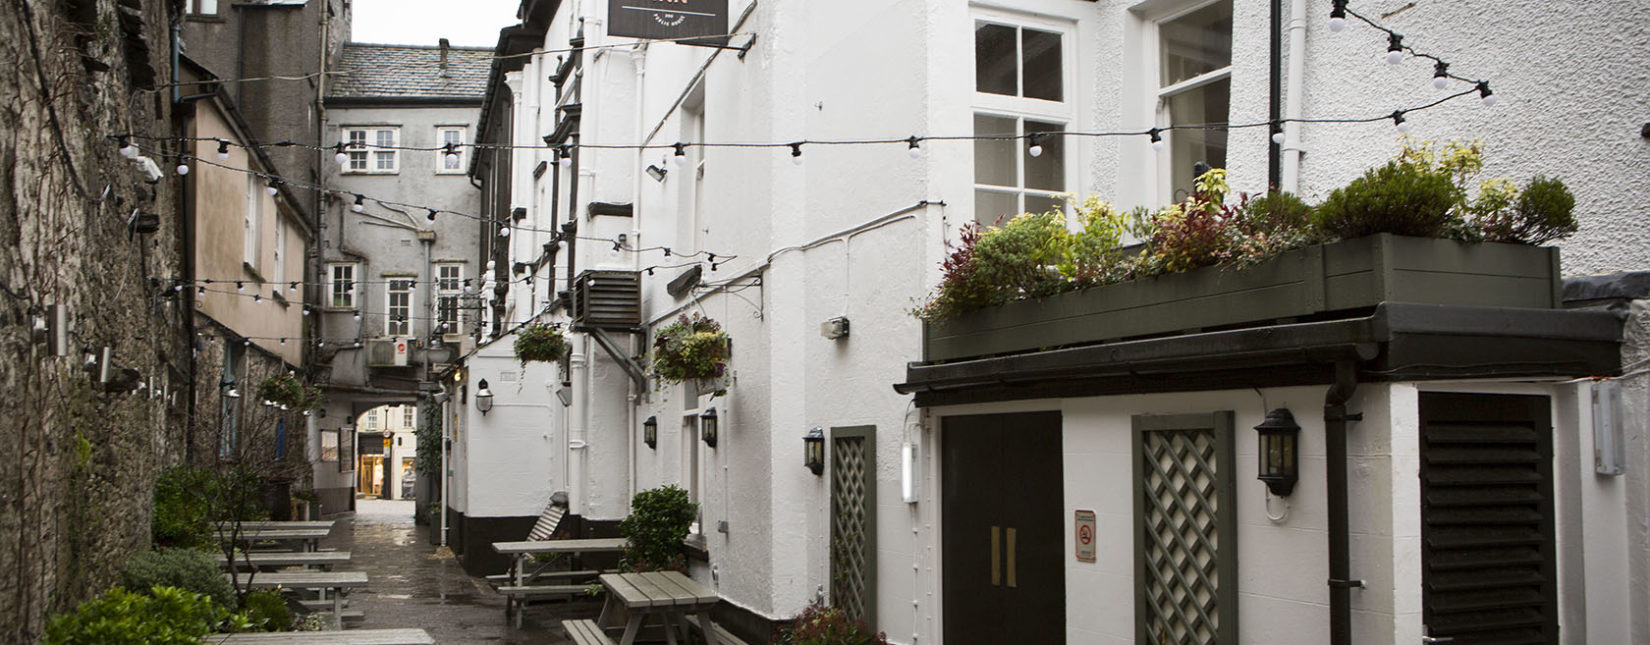 Beer gardens and outside dining